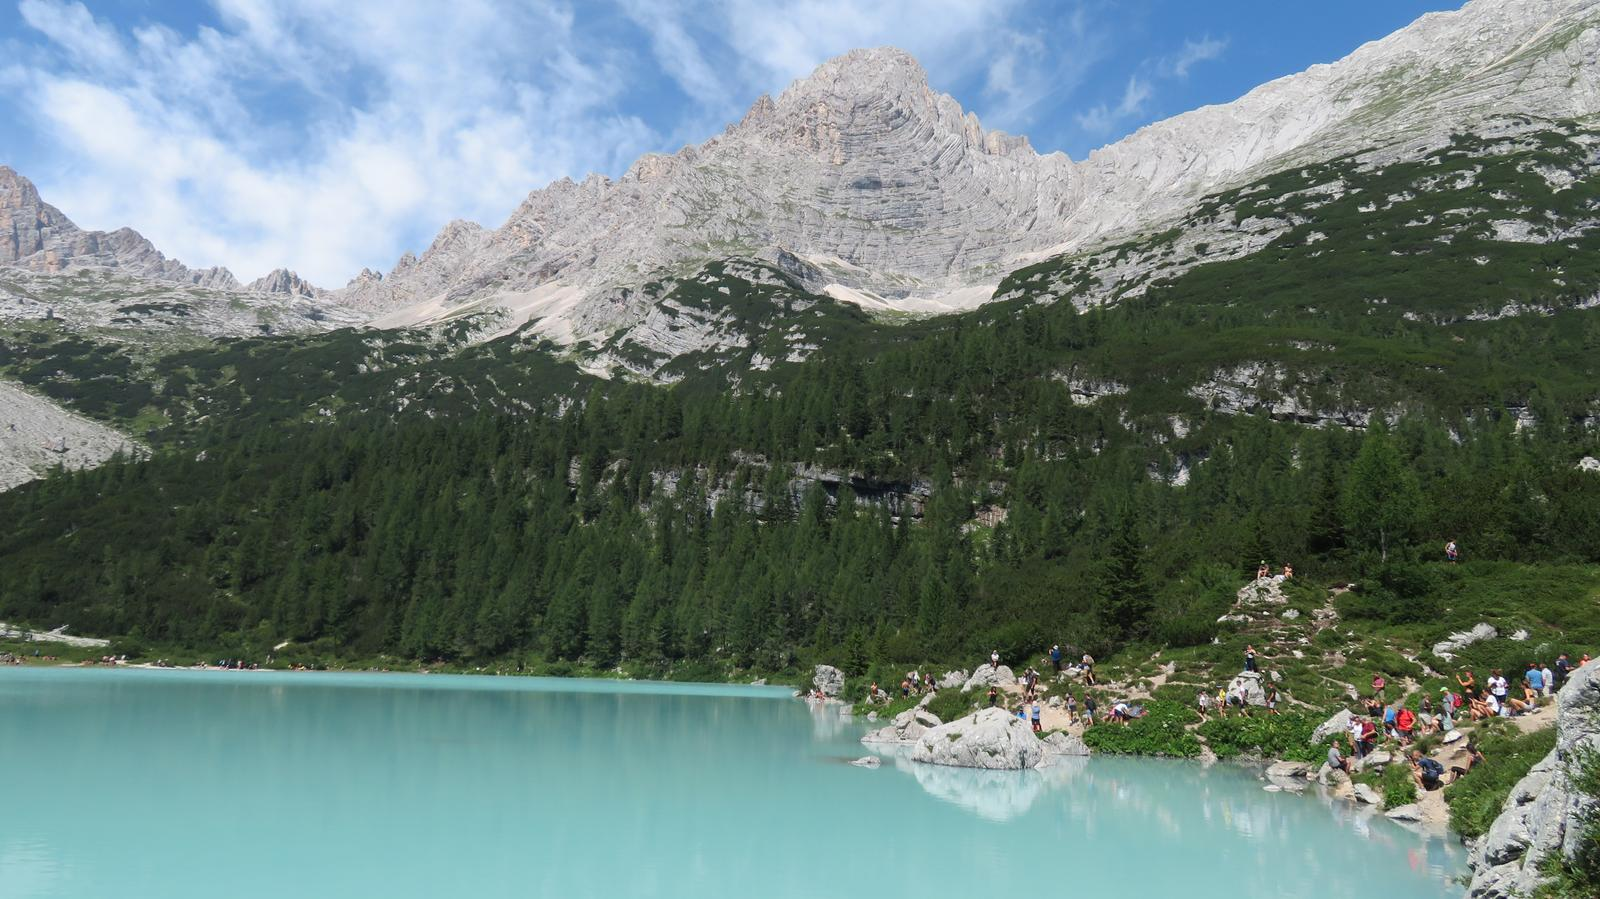 Photo of Il Lago del Sorapiss via Forcella Marcuoira dal Passo Tre Croci